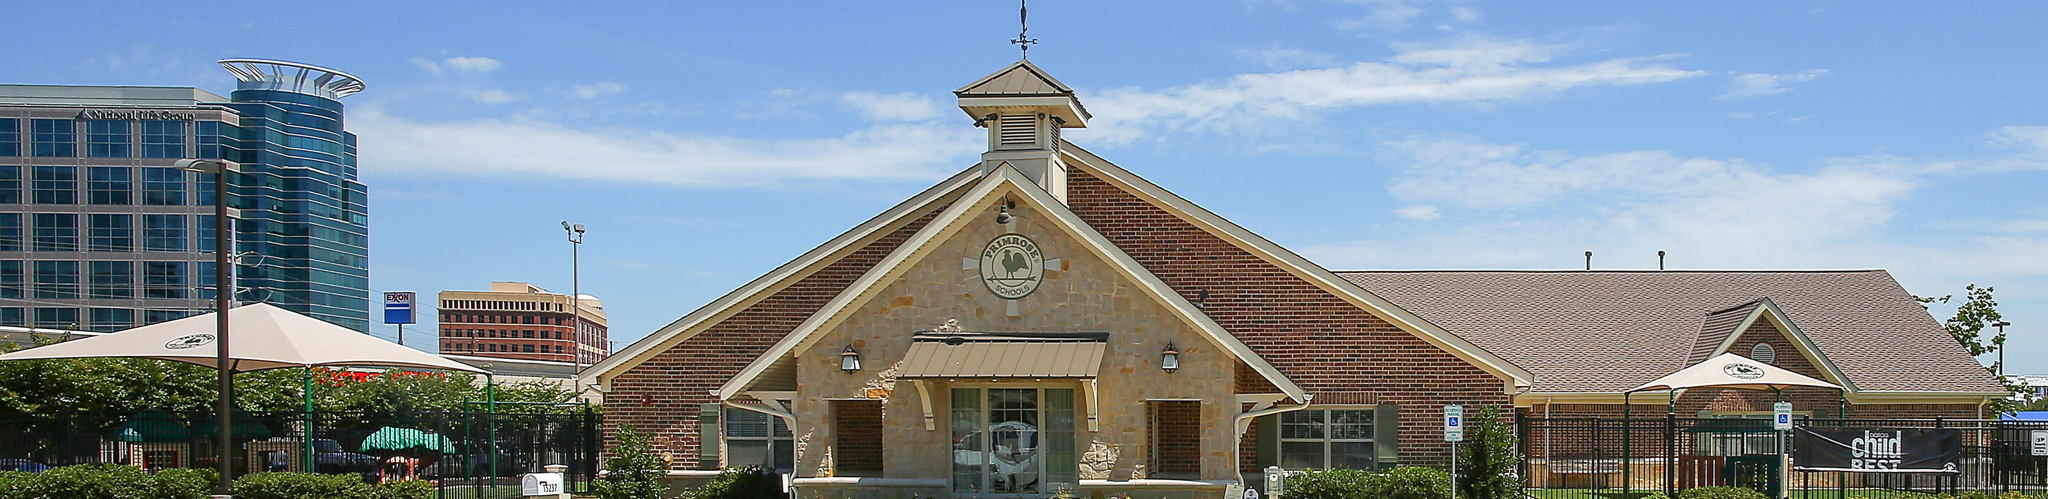 Exterior of a Primrose School of Prestonwood